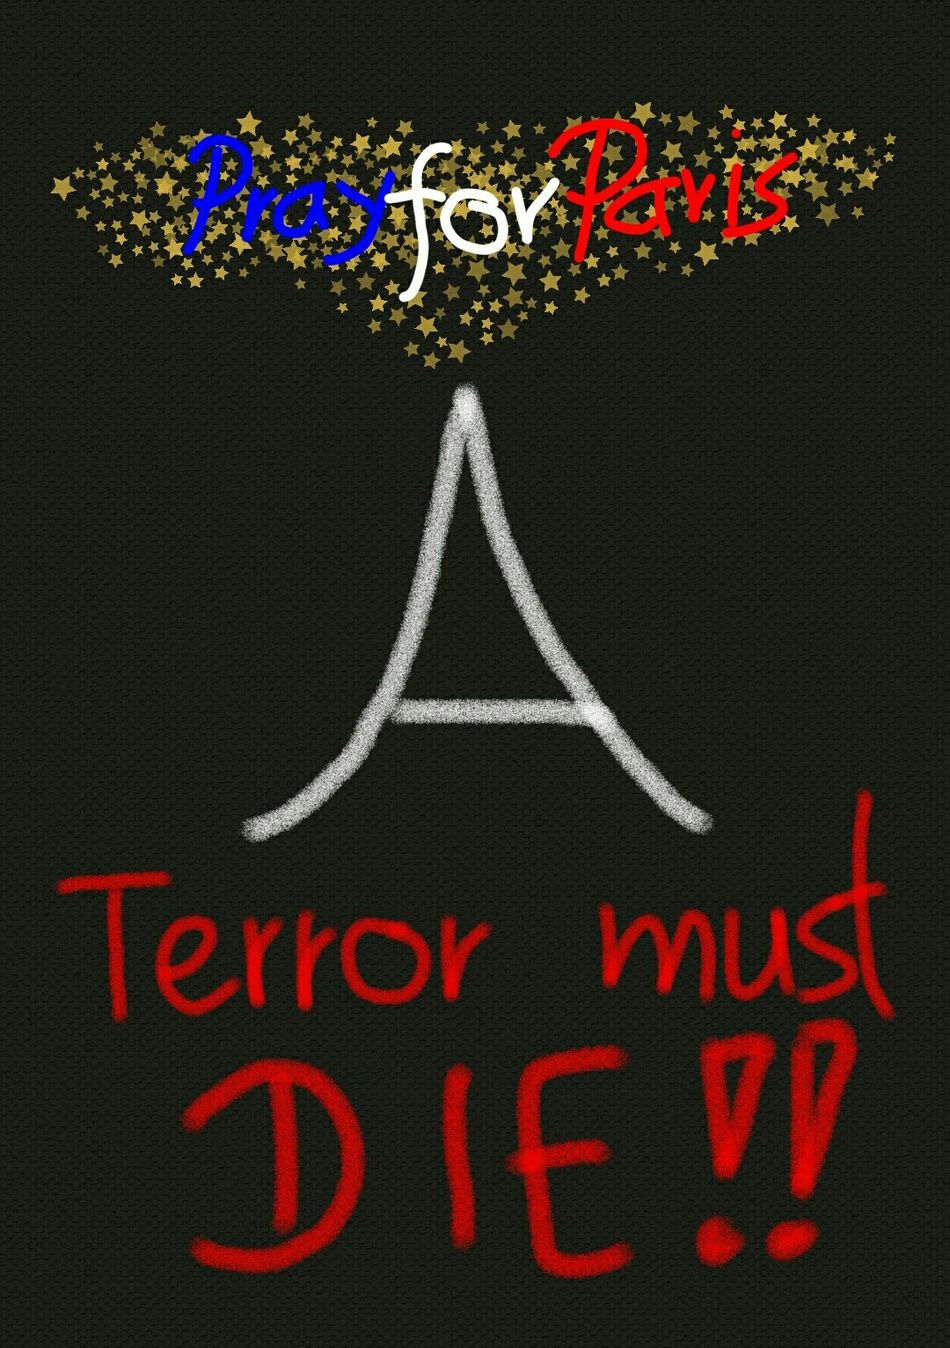 Prayforparis Noterrorism Paris Check This Out France .......😢......